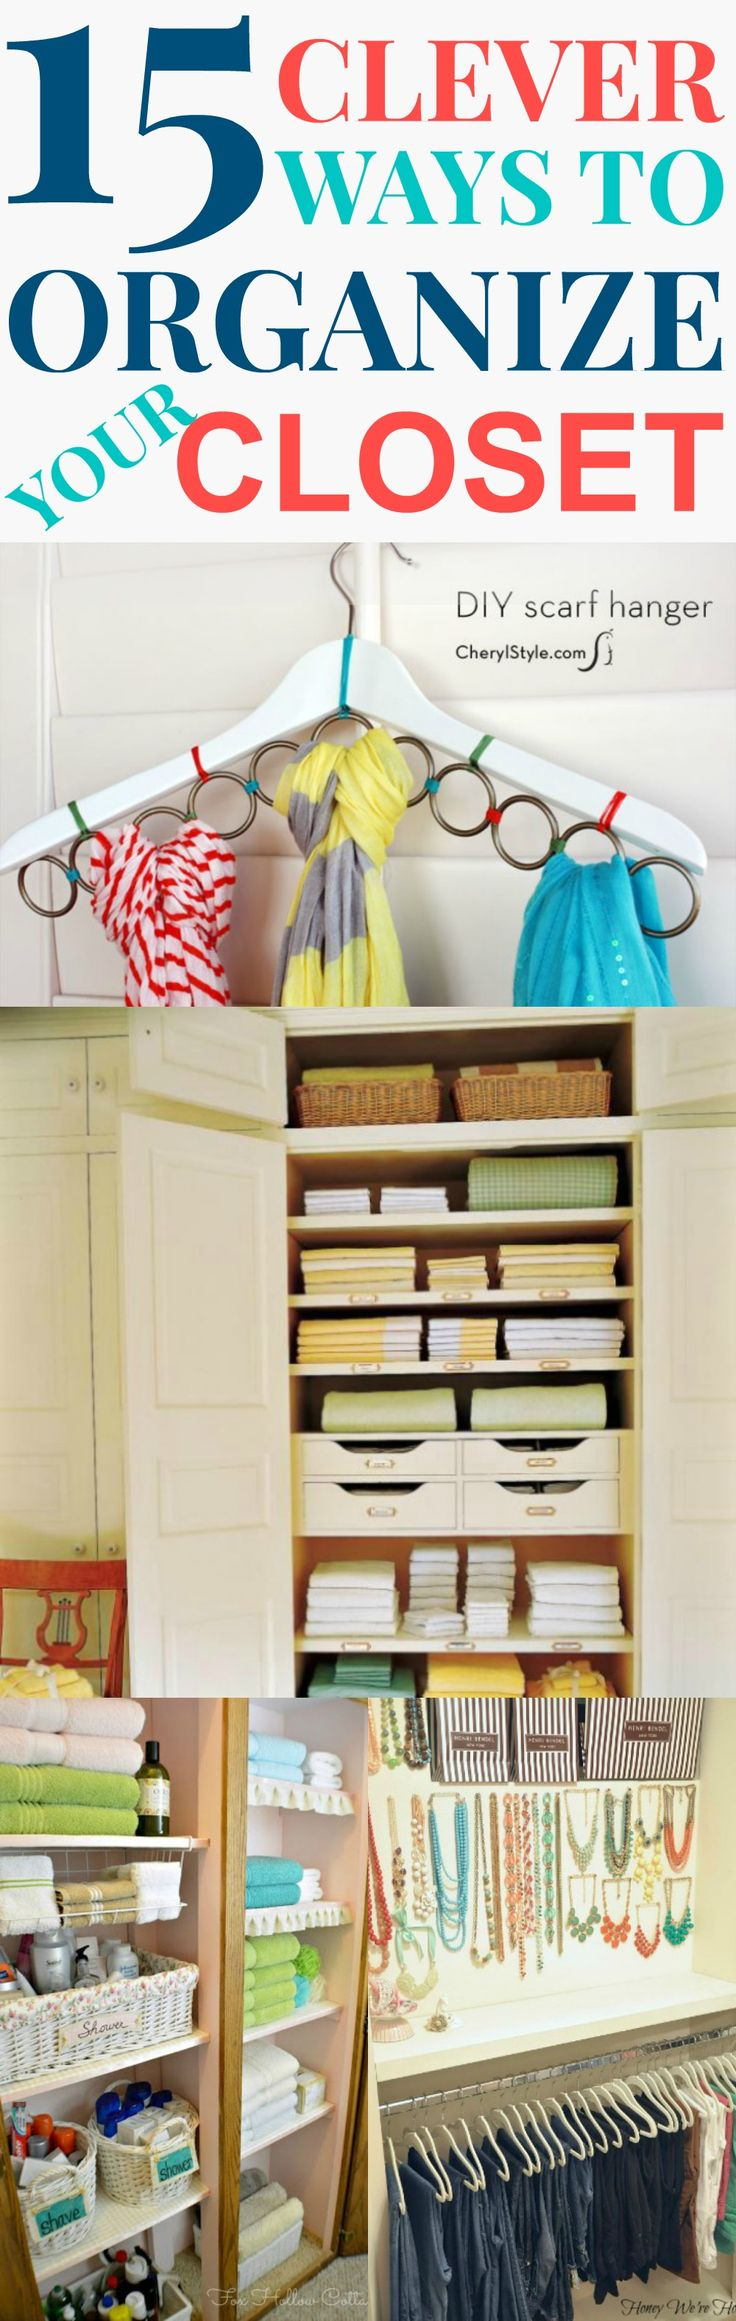 15 closet organization tips and tricks to help your to organize your closet and be clutter free.